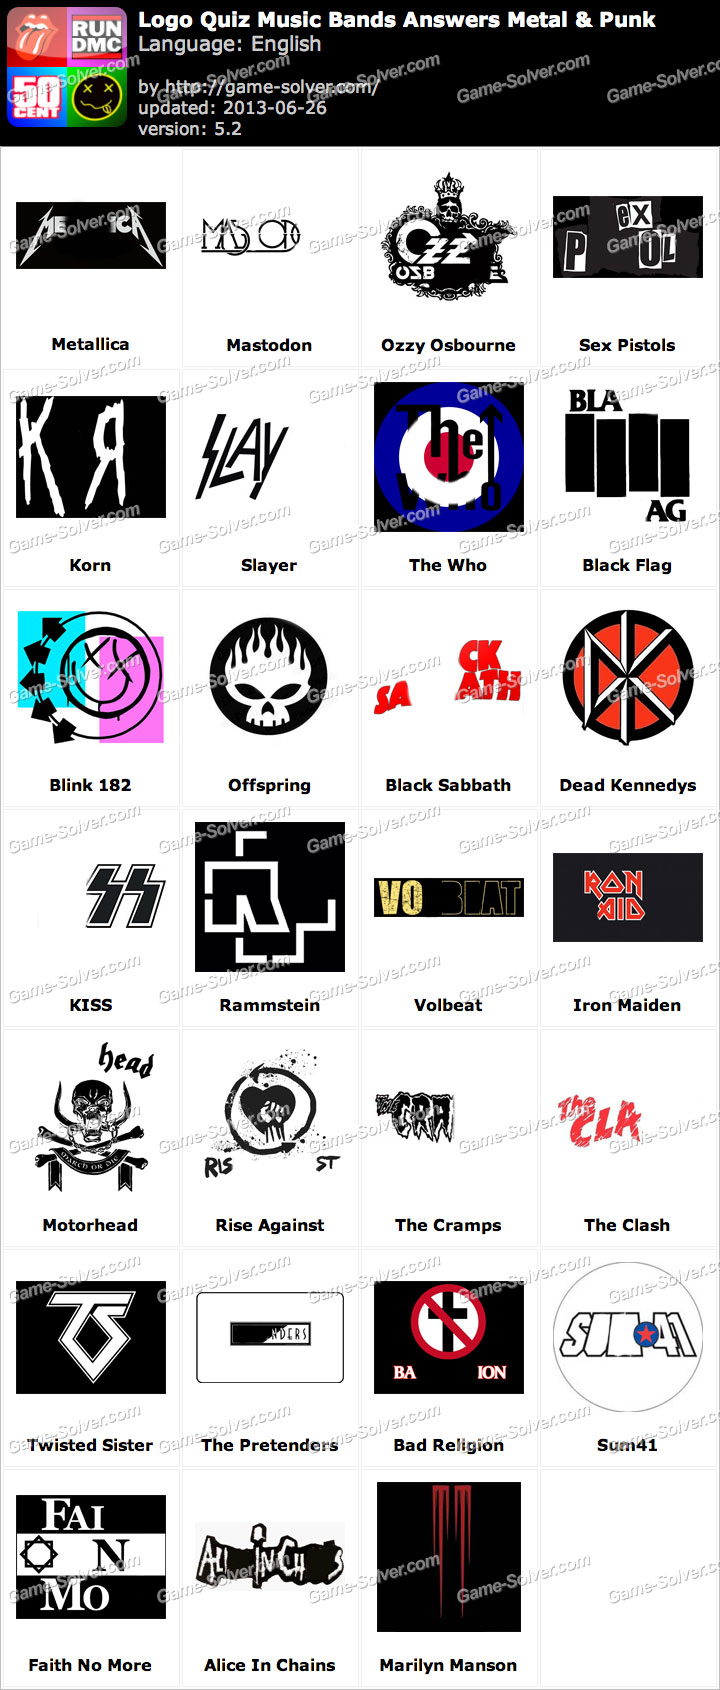 Logo Quiz Music Bands Answers Metal Punk Game Solver